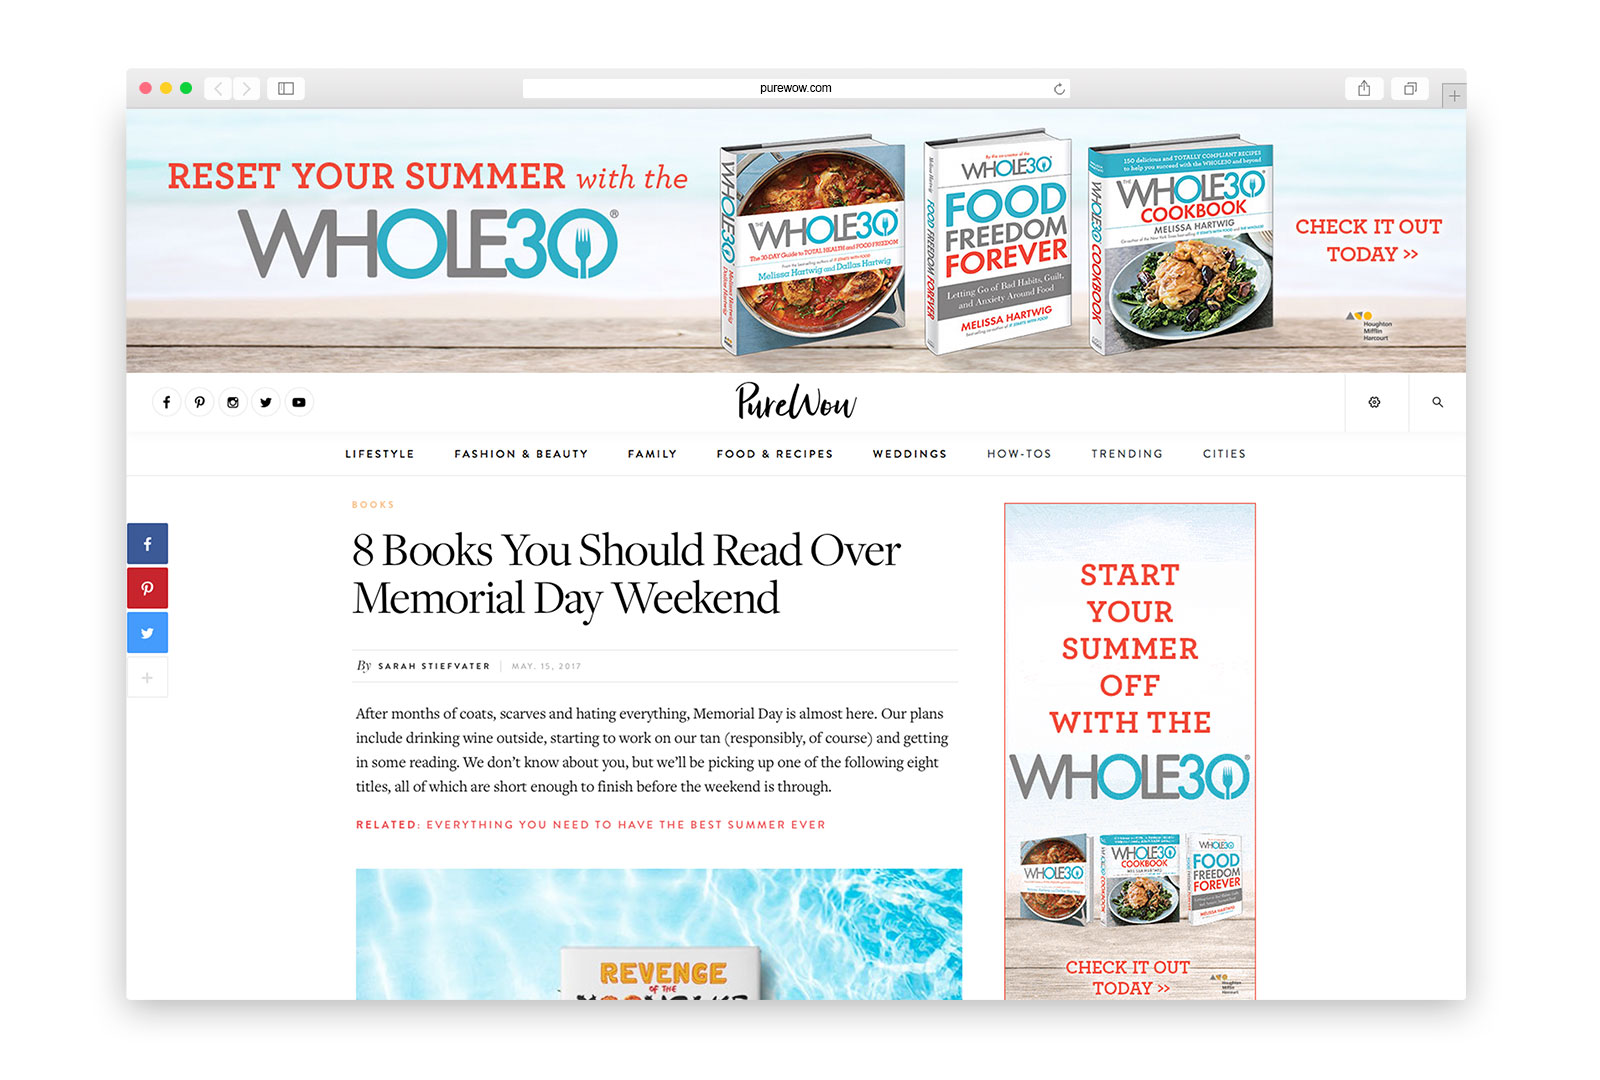 The Whole30 - Summer - Purewow.com